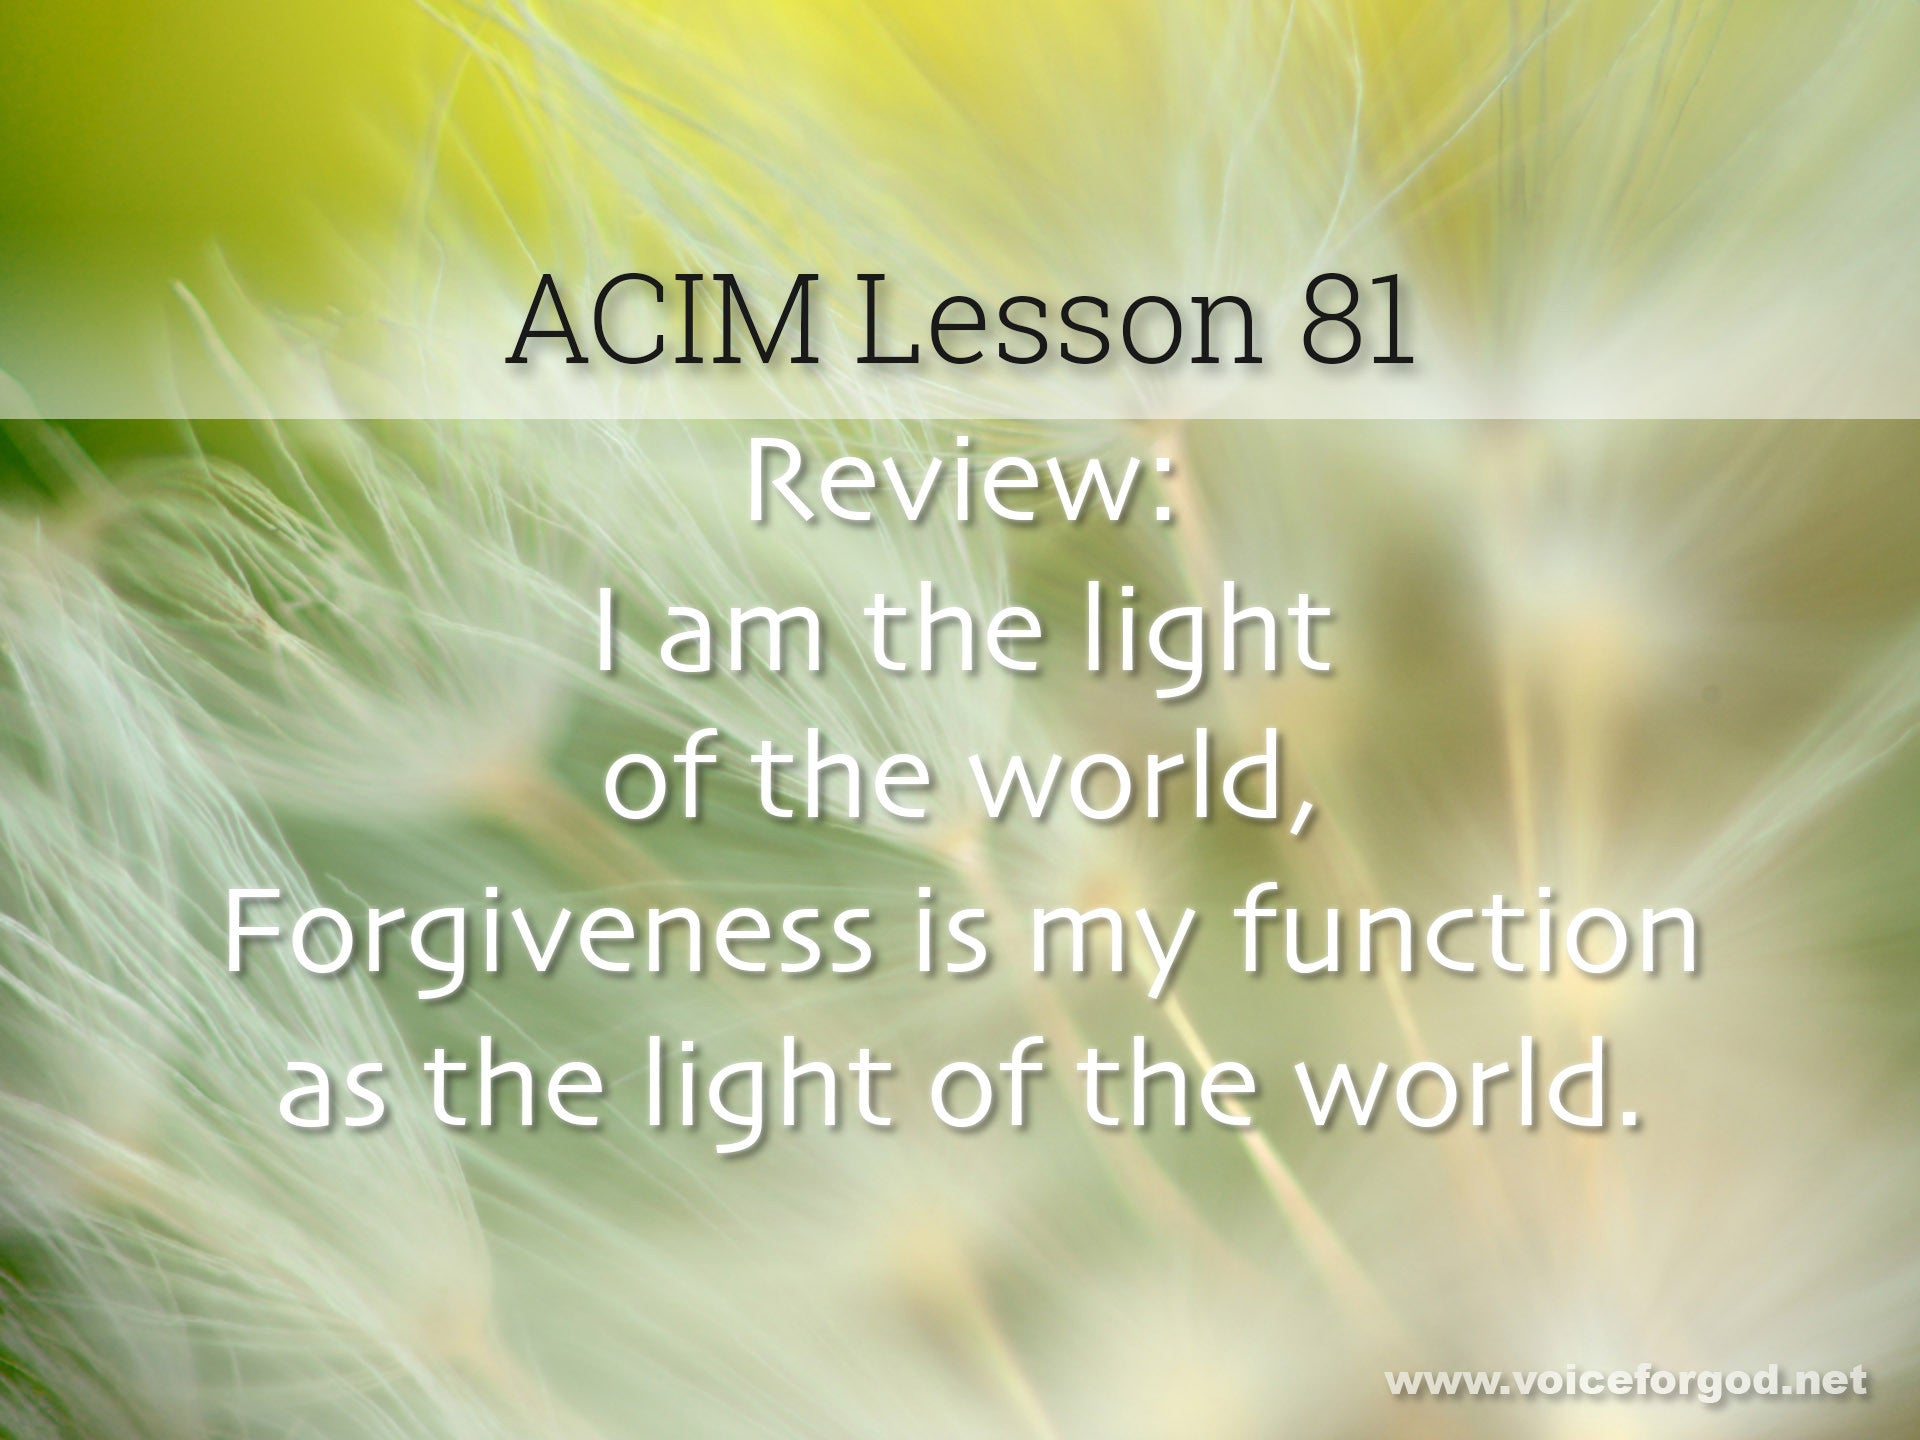 ACIM Lesson 81 - A Course in Miracles Workbook Lesson 81